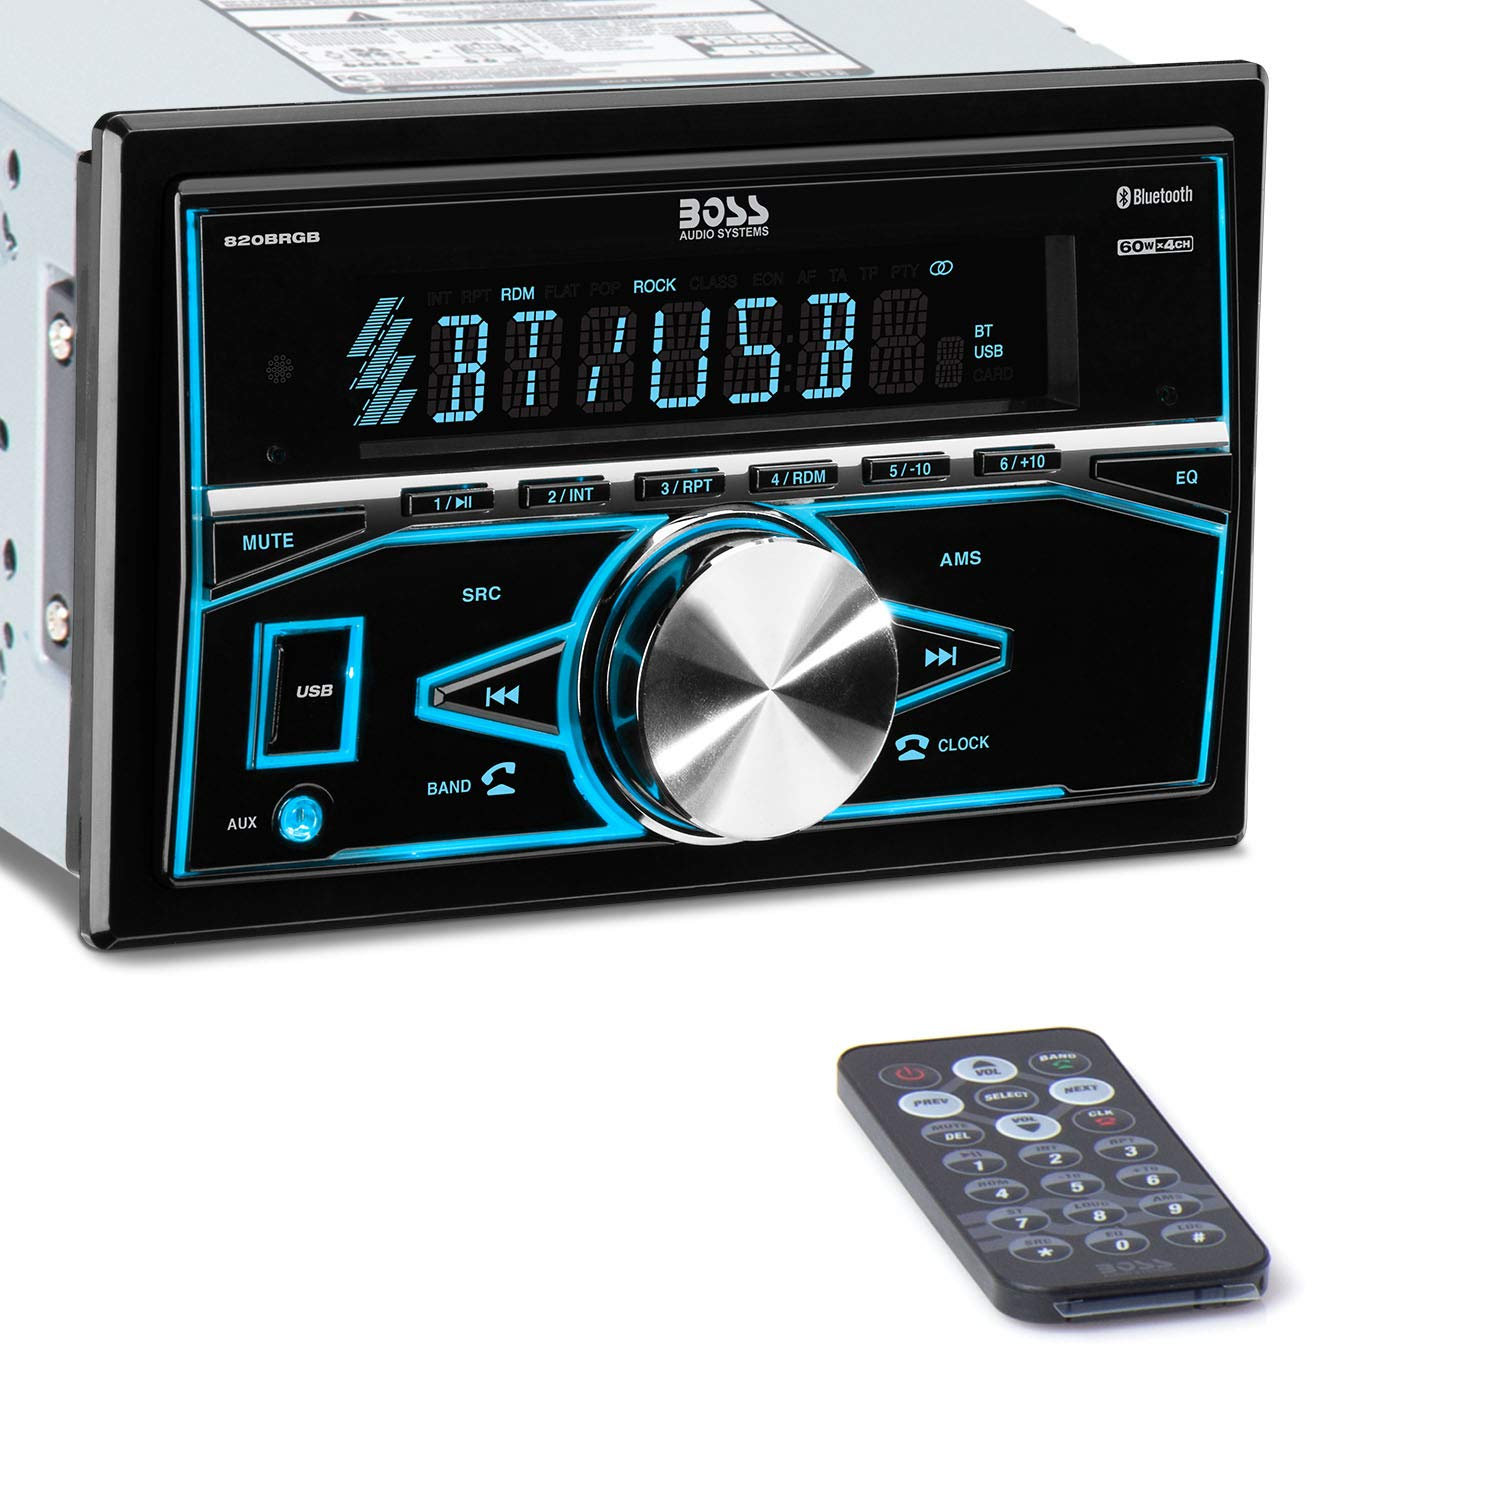 BOSS Audio Systems 820BRGB Multimedia Car Stereo - Double Din, Bluetooth Audio and Hands-Free Calling, MP3 Player, USB Port, AUX Input, AM/FM Radio Receiver, No CD/DVD, Multi Color Illumination by BOSS Audio Systems